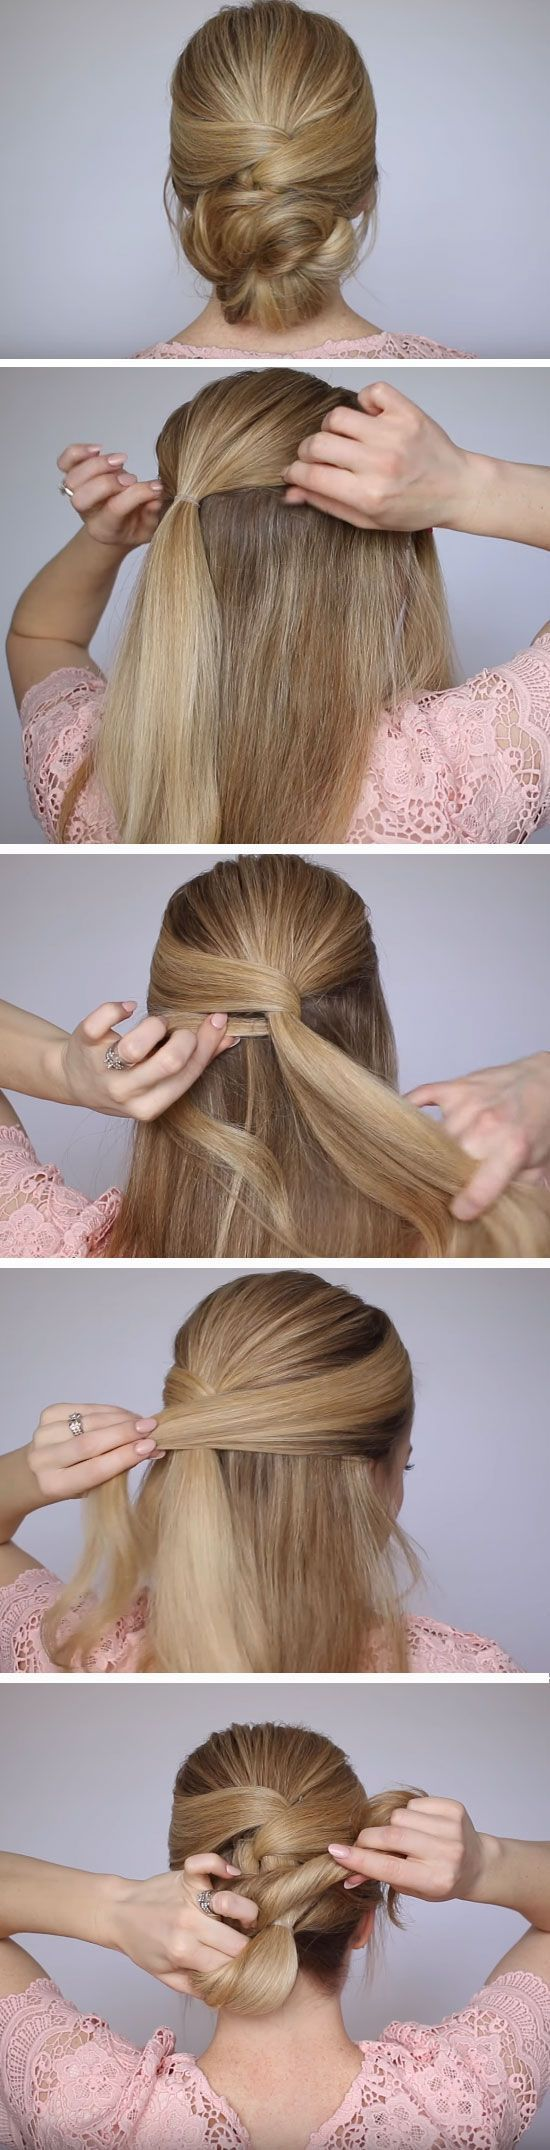 Pretty Low Bun Quick Diy Prom Hairstyles For Medium Hair Quick And Easy Homecoming Hairstyles For Long H Prom Hair Medium Medium Hair Styles Diy Hairstyles